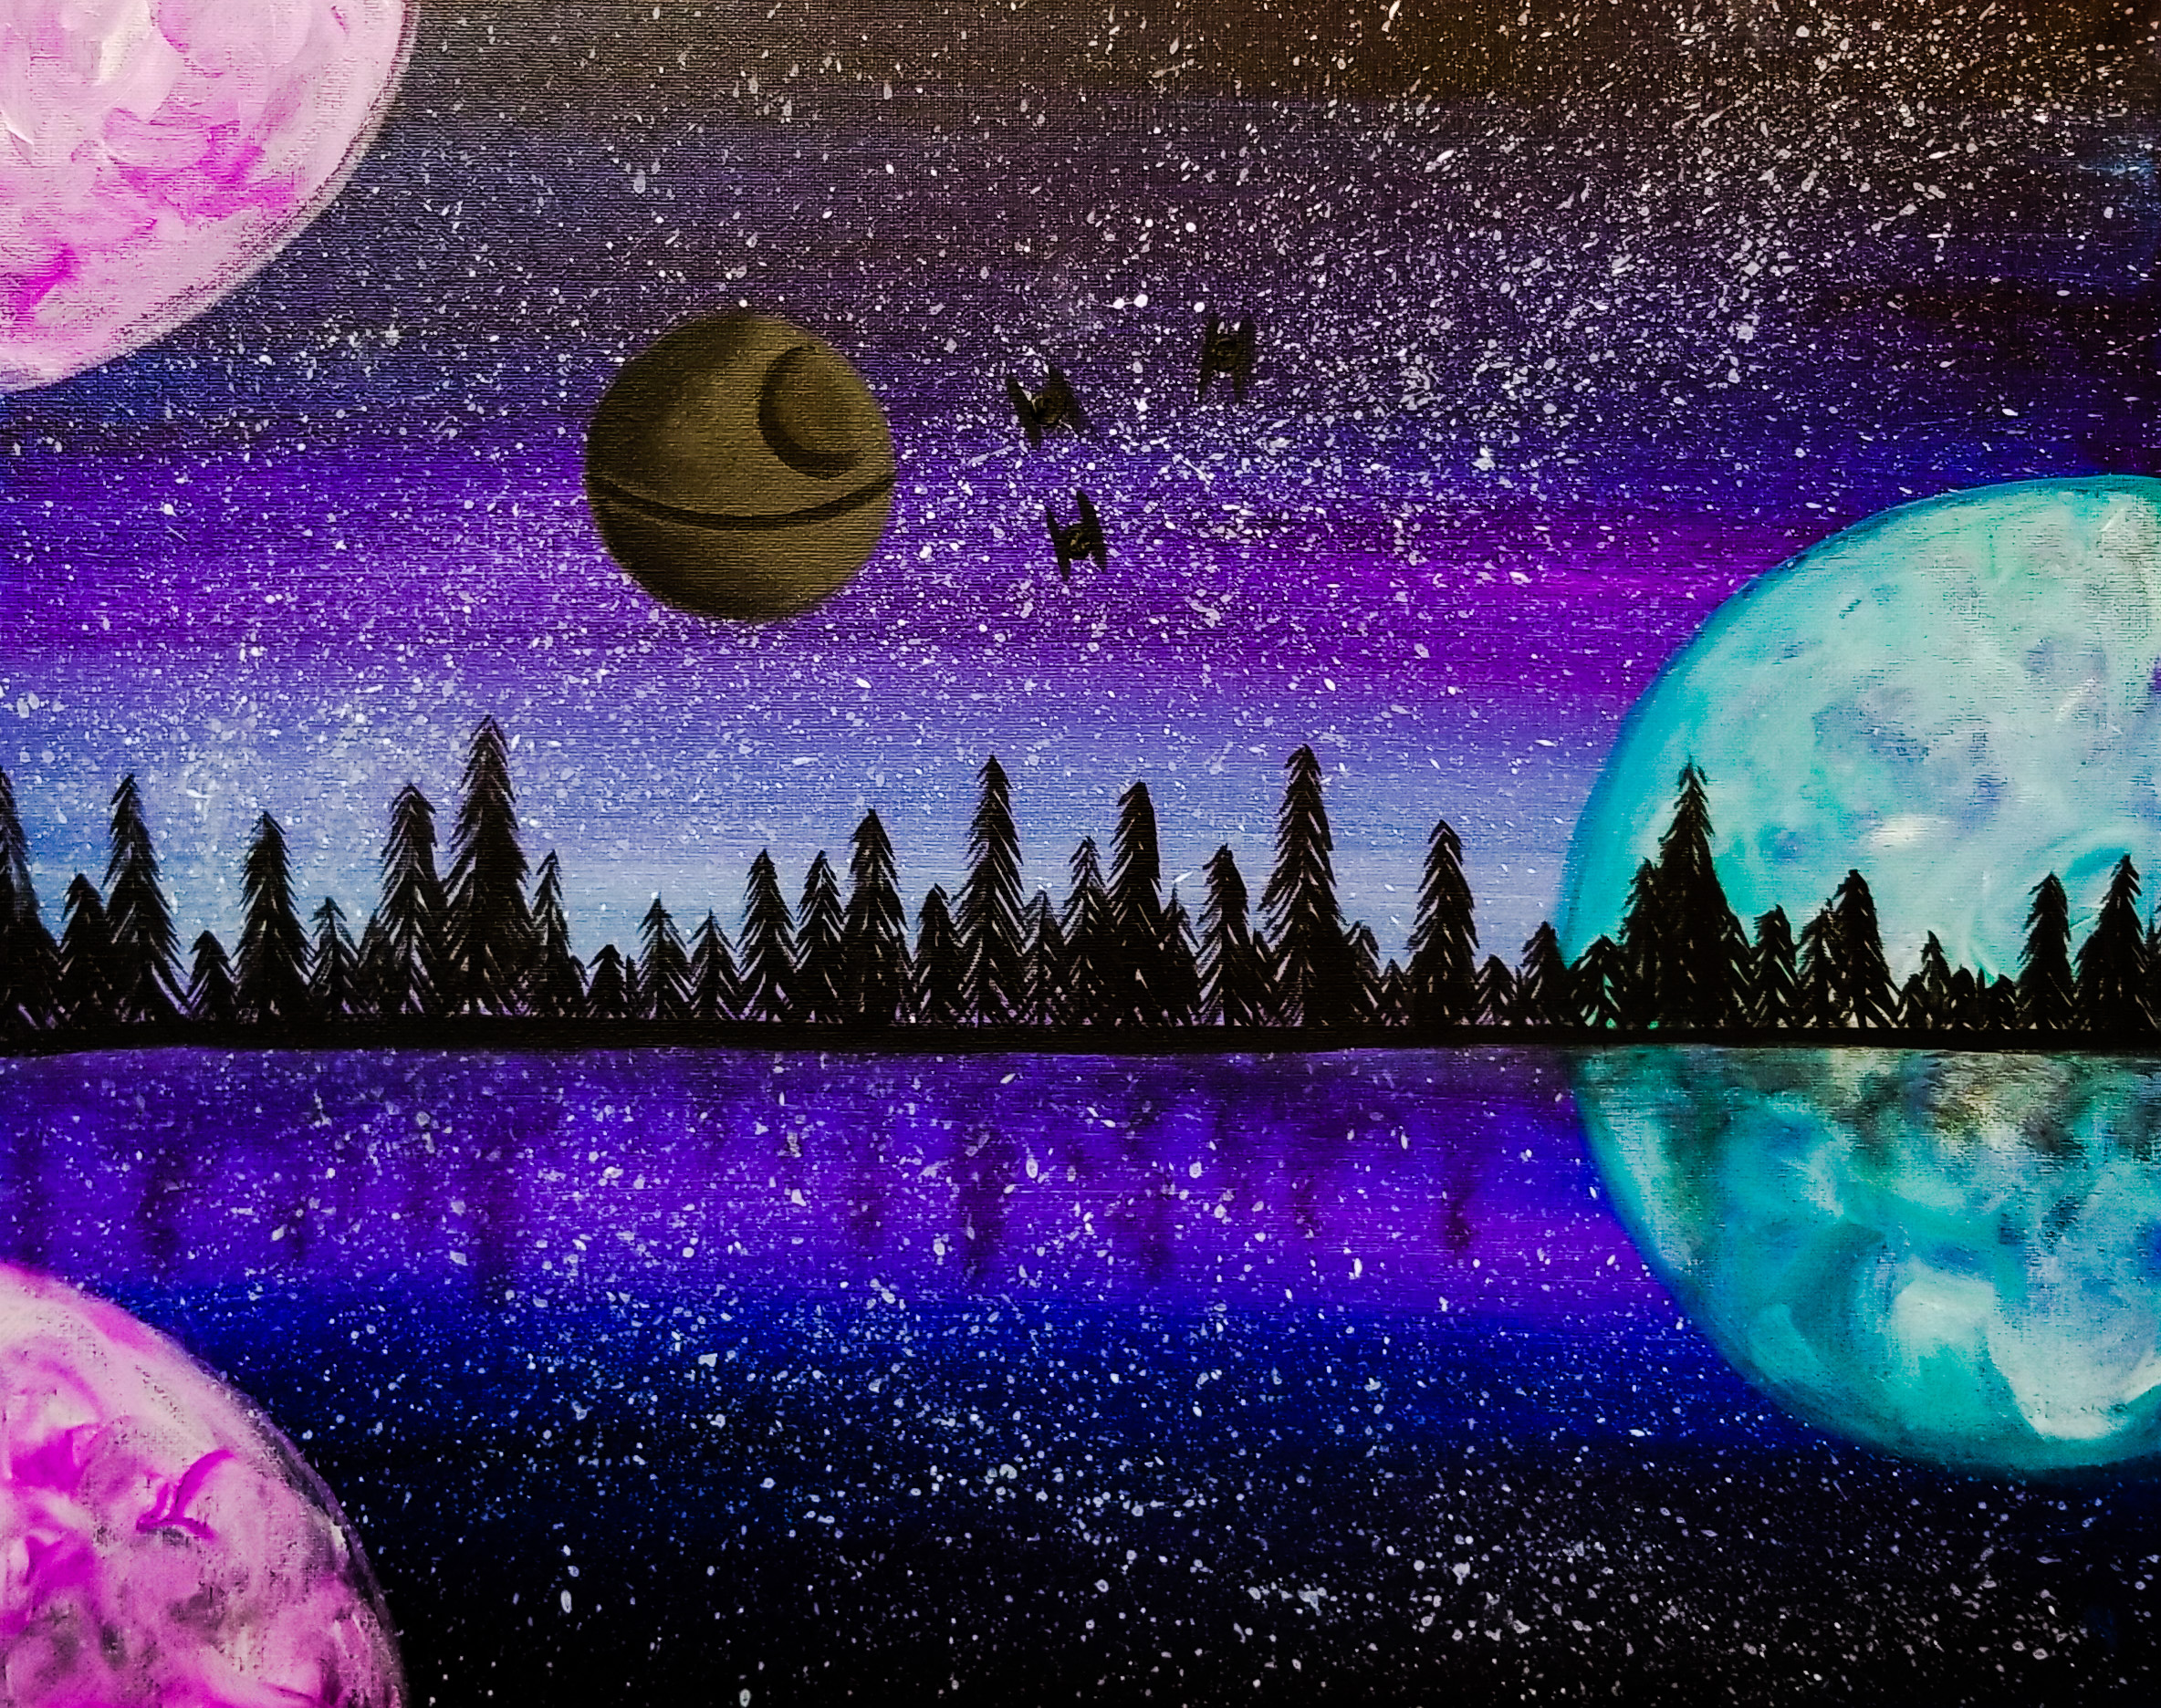 In A Distant Galaxy